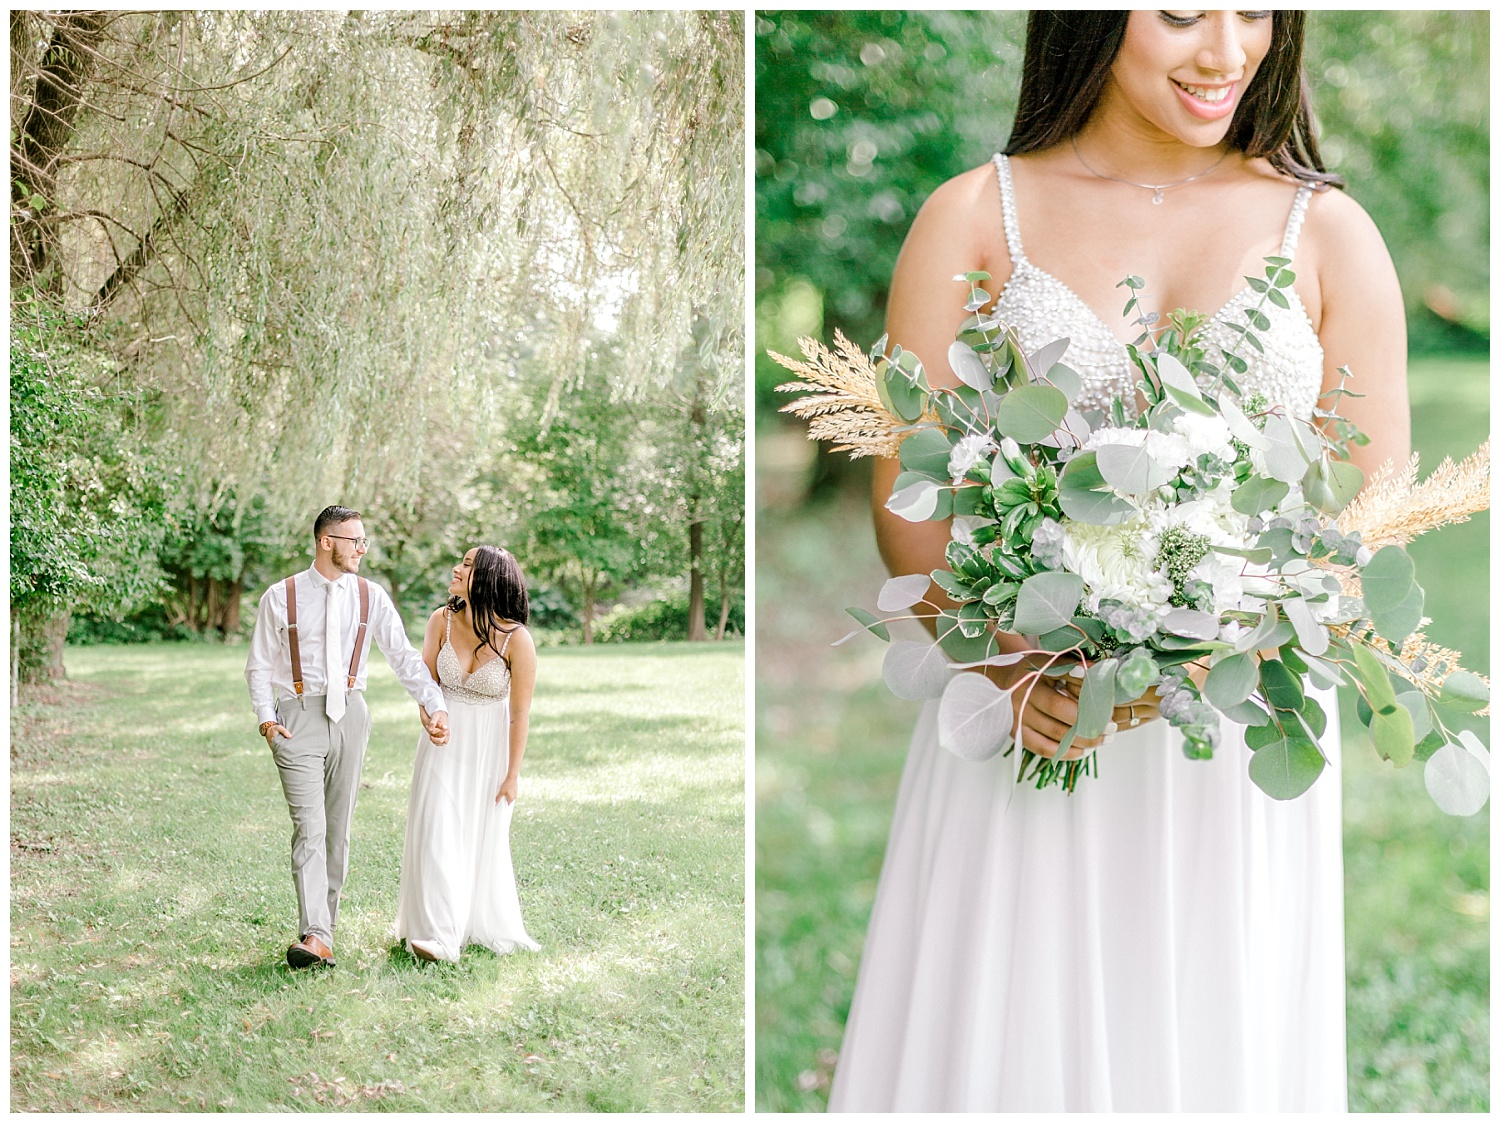 Olive green and white rustic barn wedding at burnside plantation in bethlehem pennsylvania by PA based destination wedding and lifestyle photographer Lytle photography (14).jpg